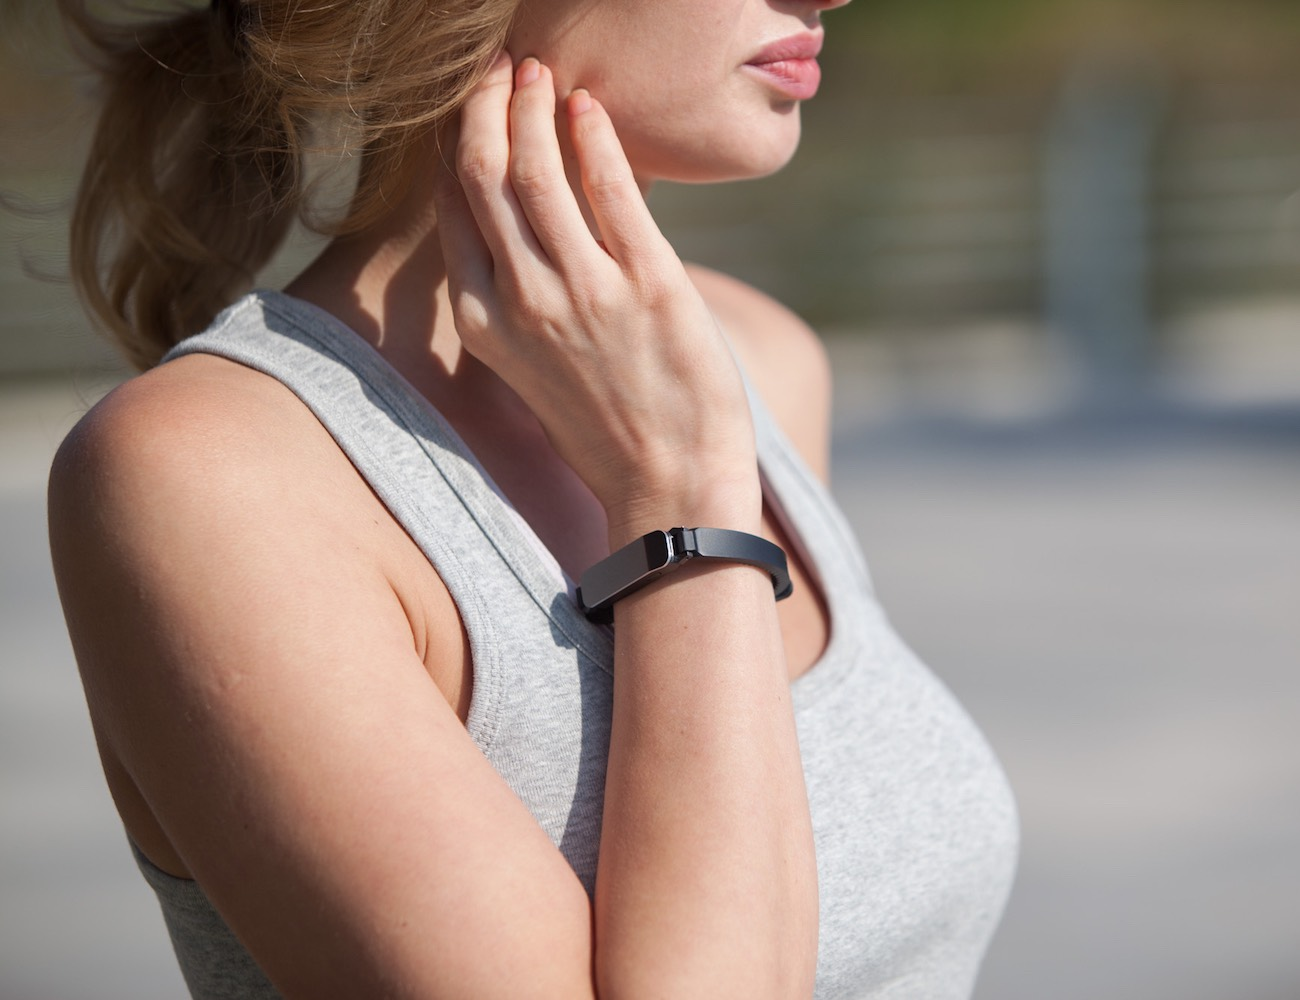 ZIKTO Walk Fitness and Activity Tracker